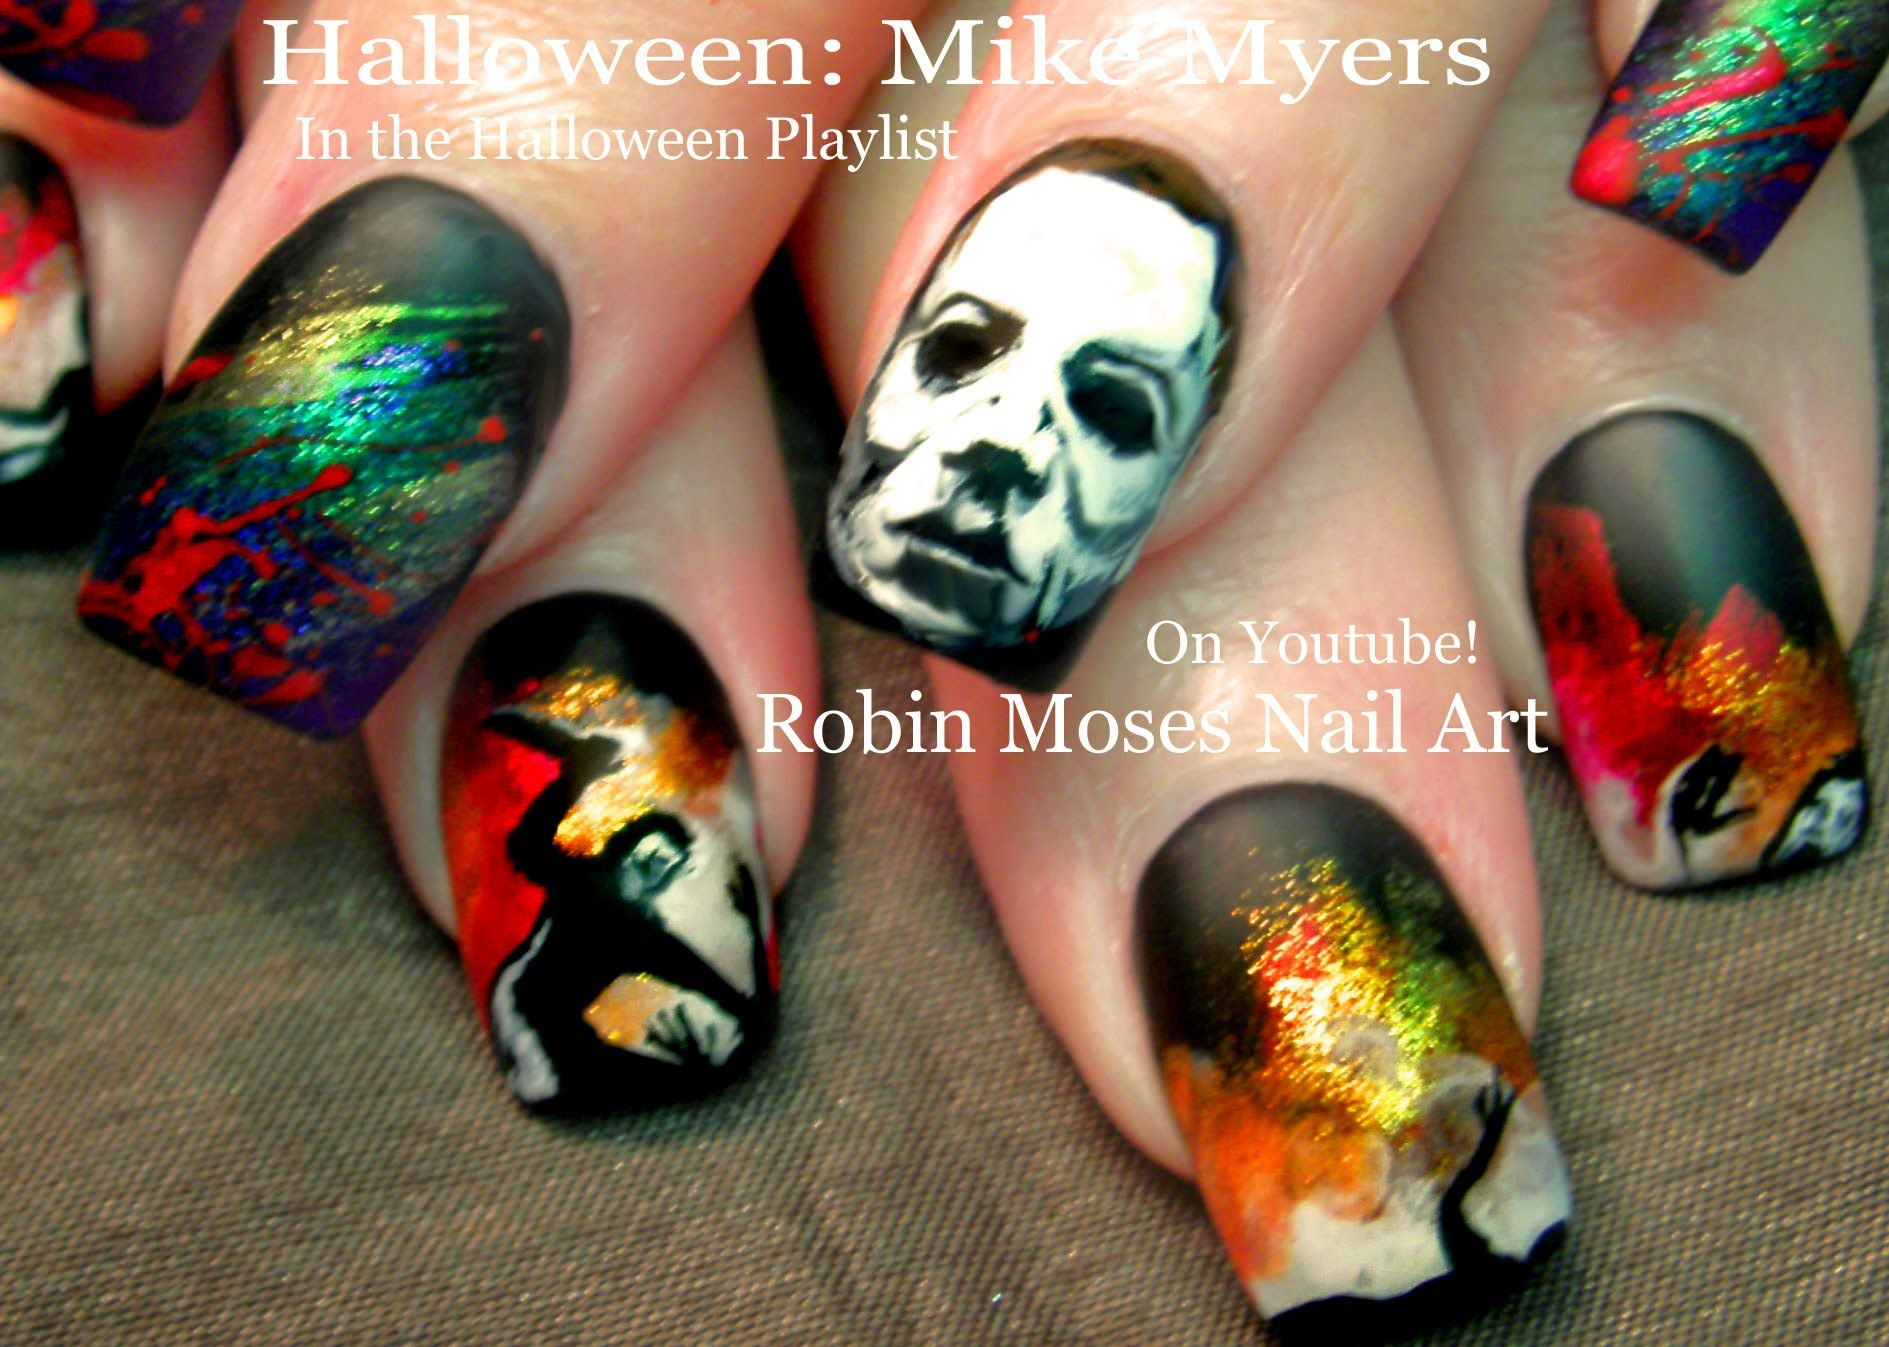 Halloween nails diy scary mike myers nail art design tutorial halloween nails diy scary mike myers nail art design tutorial prinsesfo Images